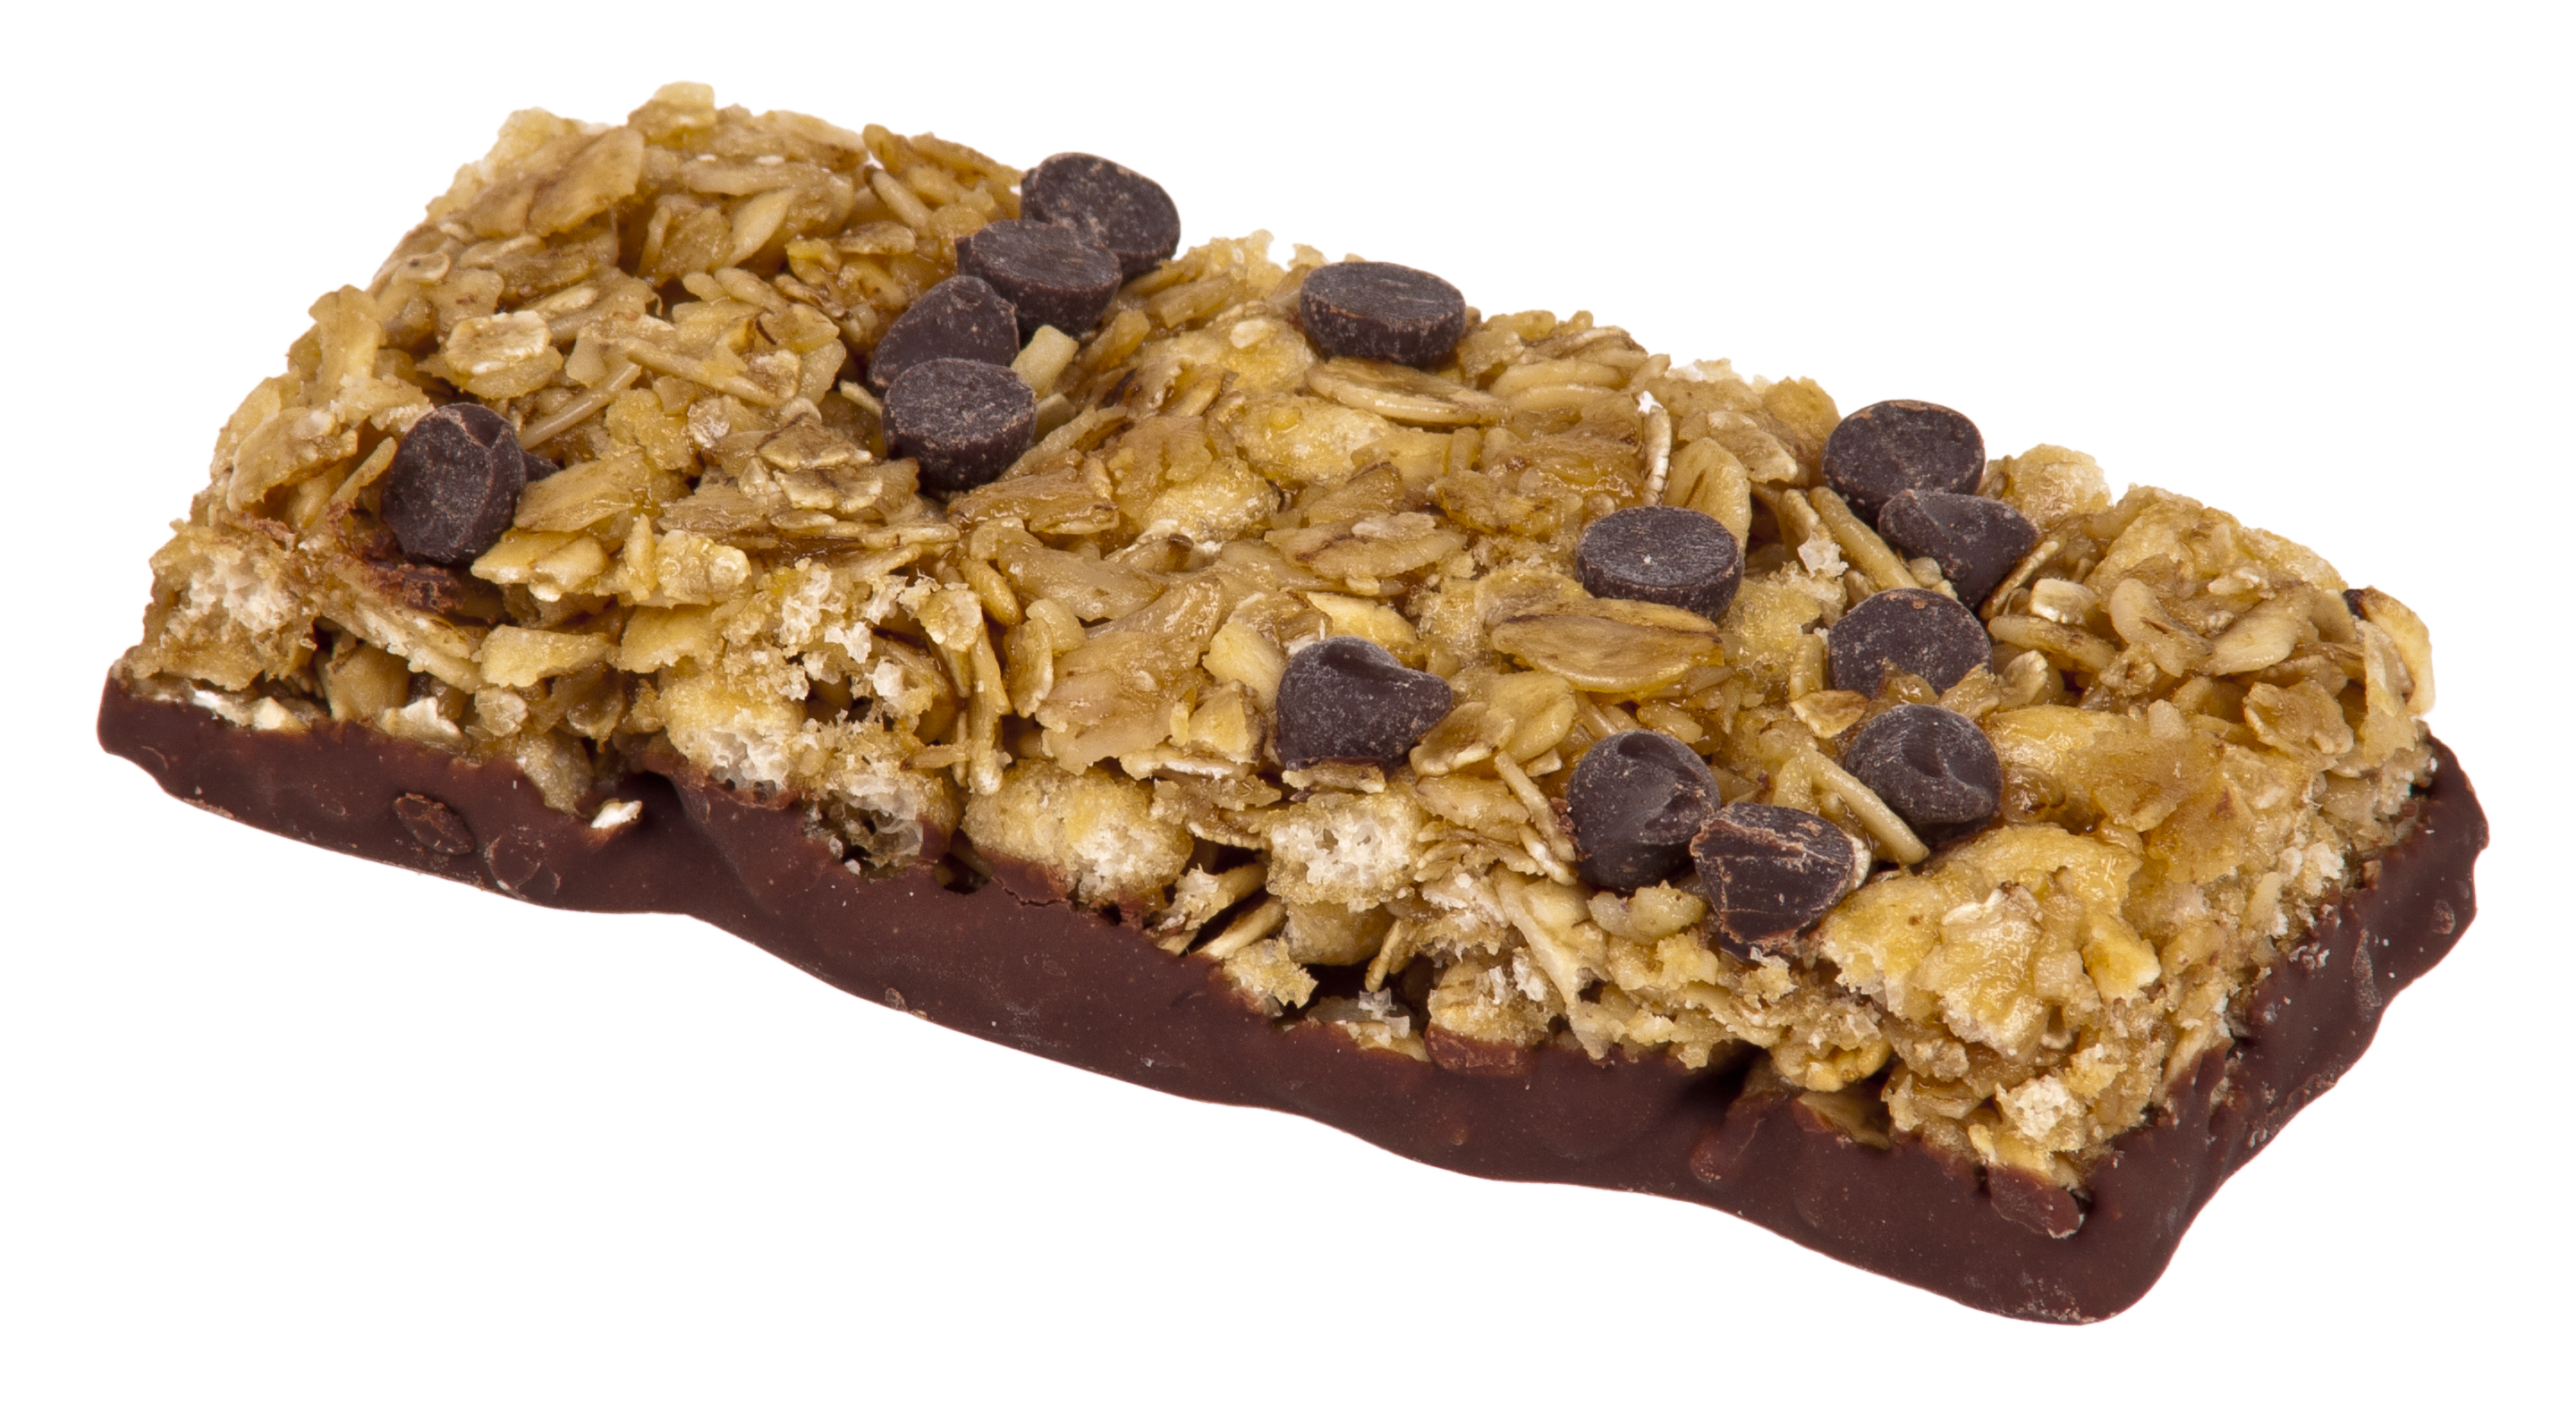 File:Chewy-Granola-Bar.jpg - Wikimedia Commons